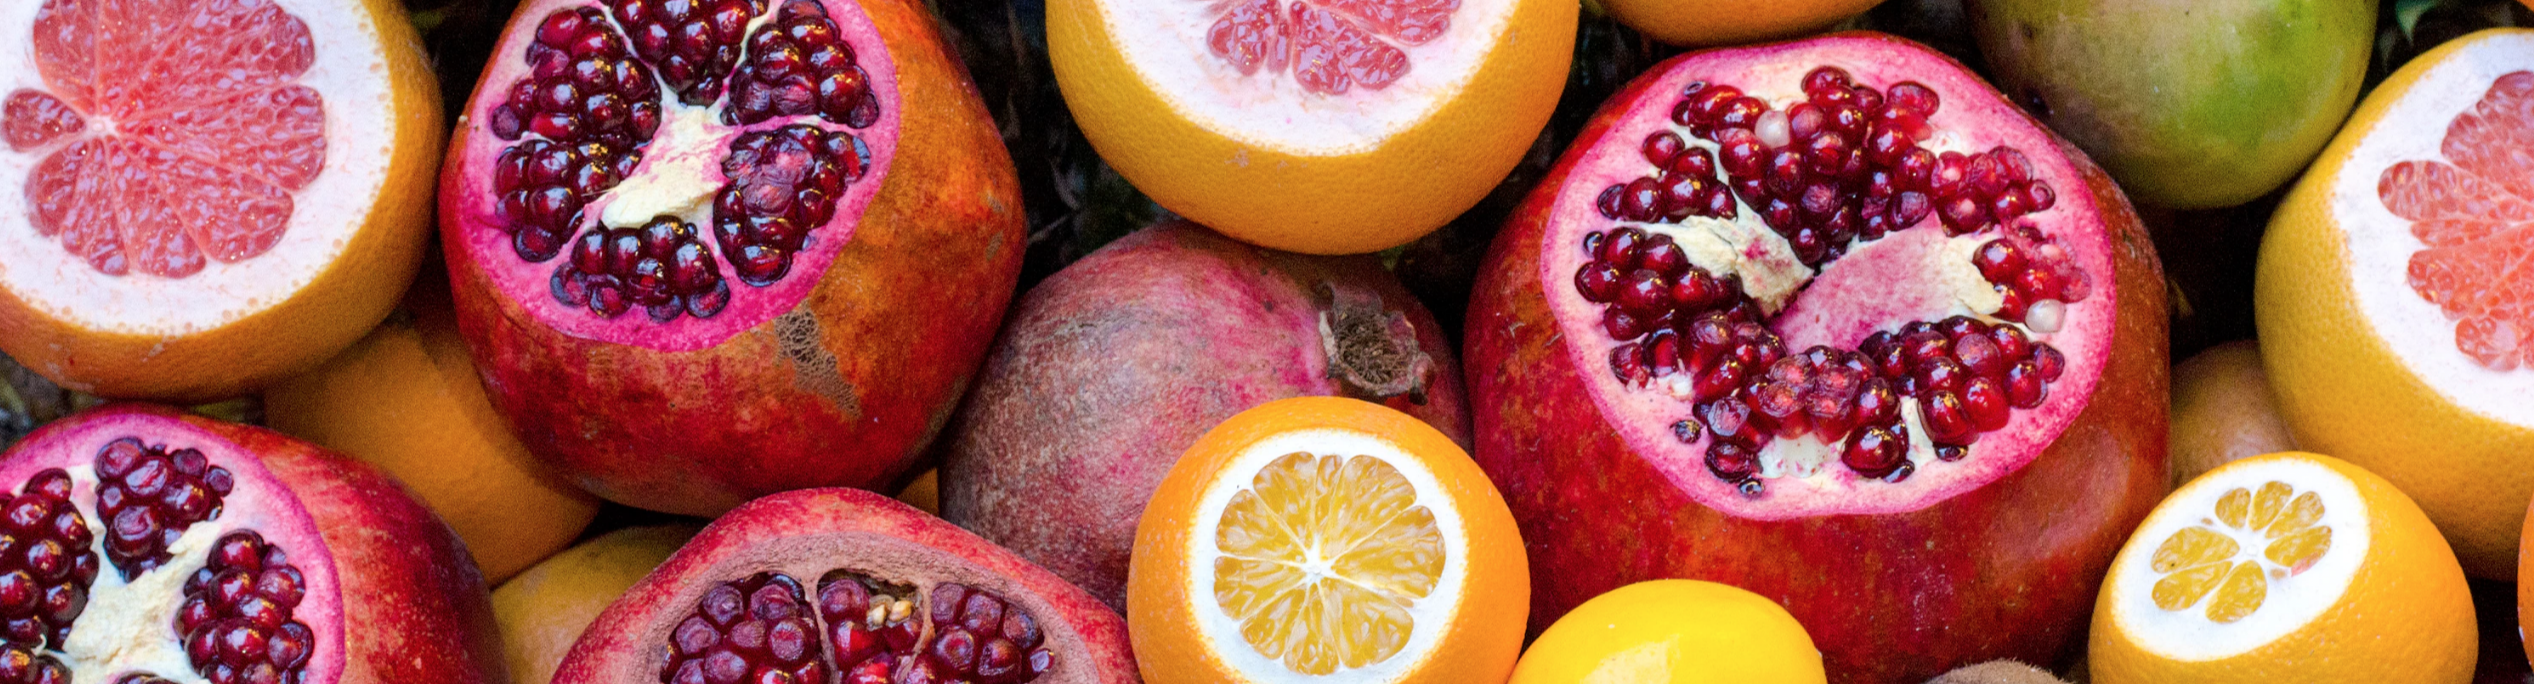 Organic fruits for import - what are the regulations for warehousing?